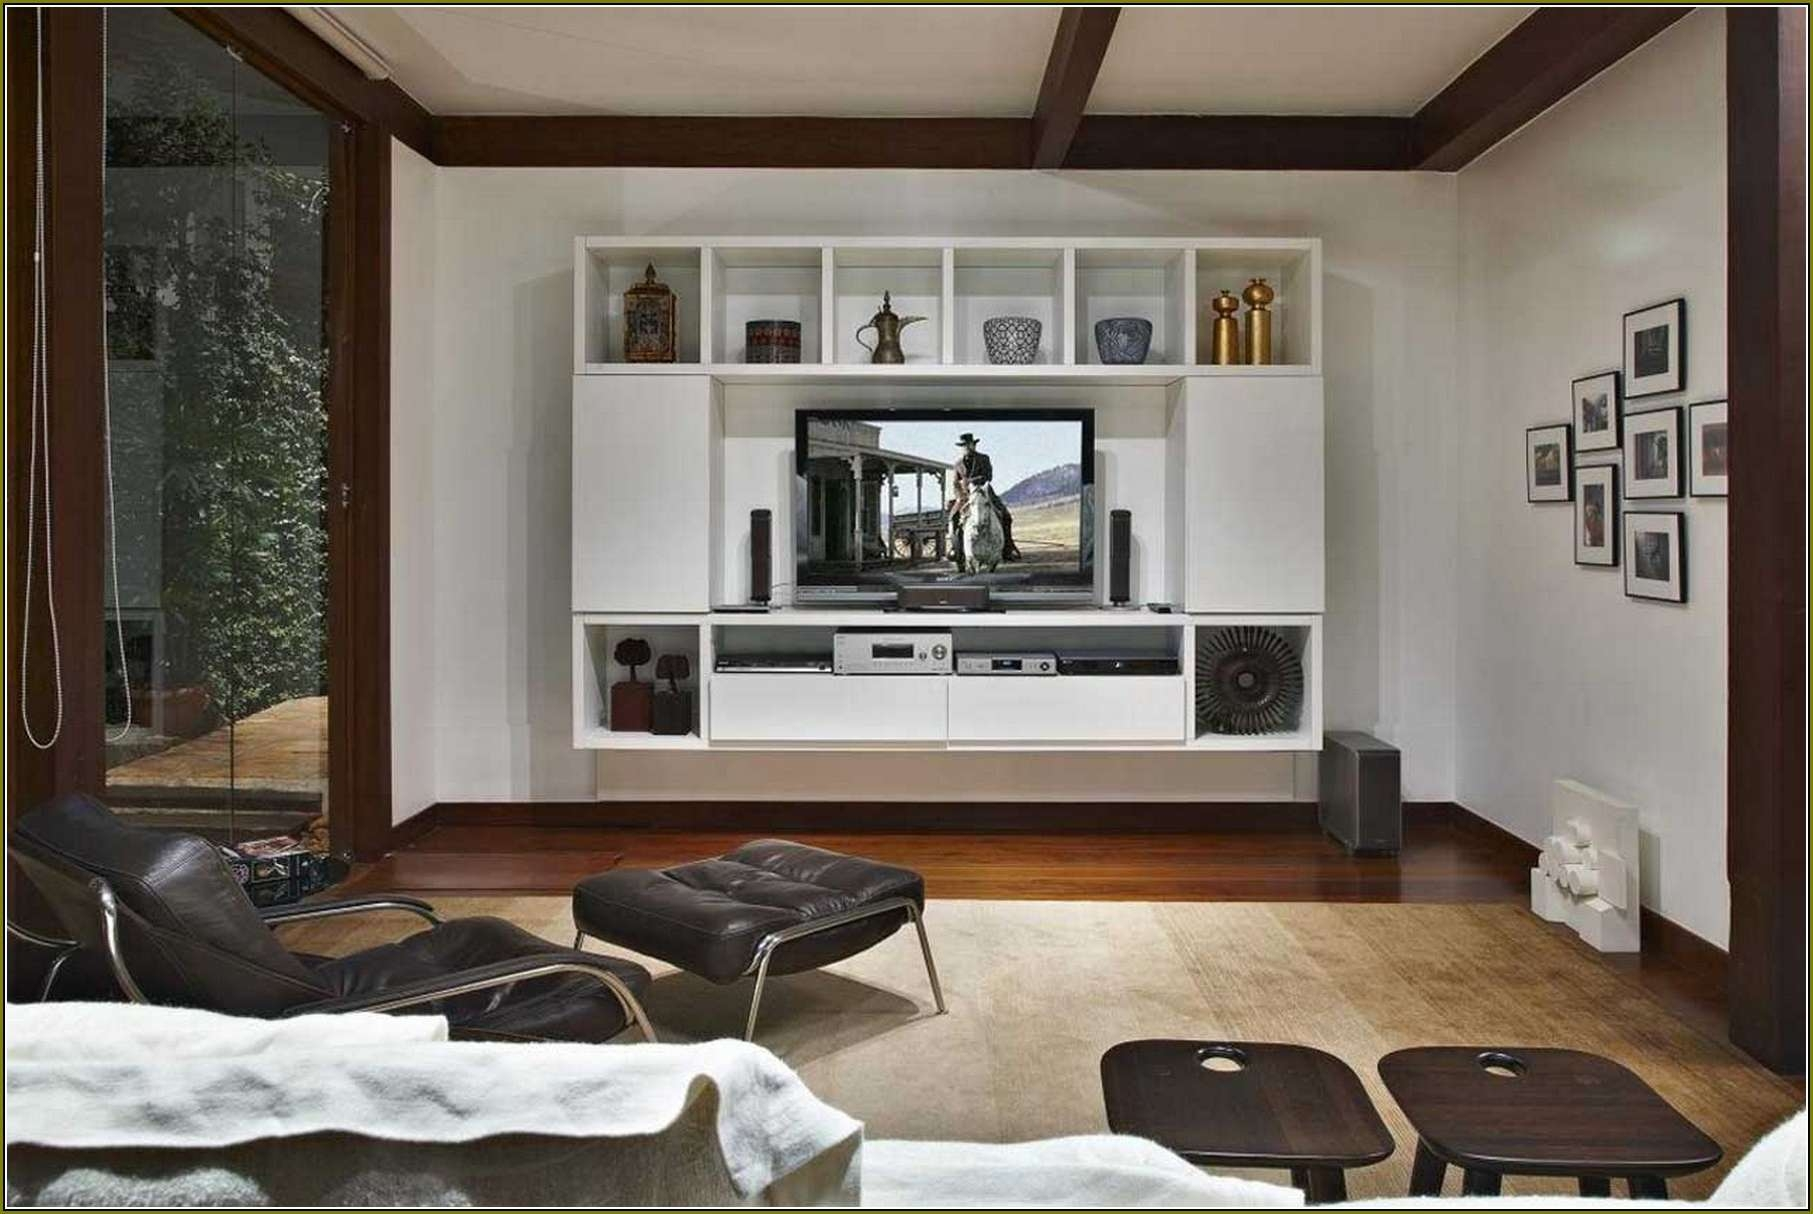 Flat Screen Tv Cabinet Ideas | Home Design Ideas With Wall Mounted Tv Cabinets For Flat Screens (View 20 of 20)